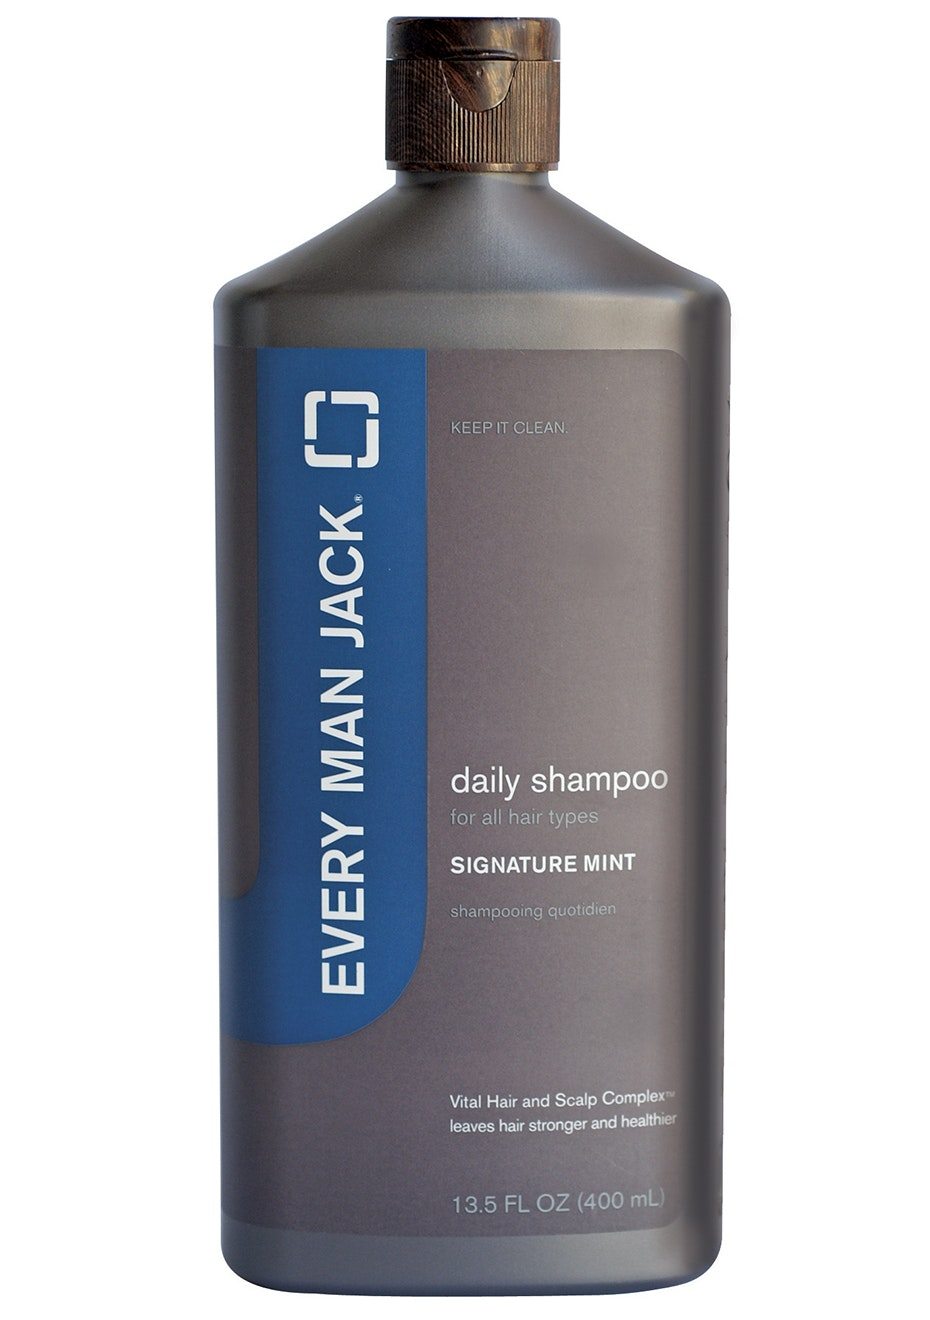 Every Man Jack - Daily Shampoo - Signature Mint